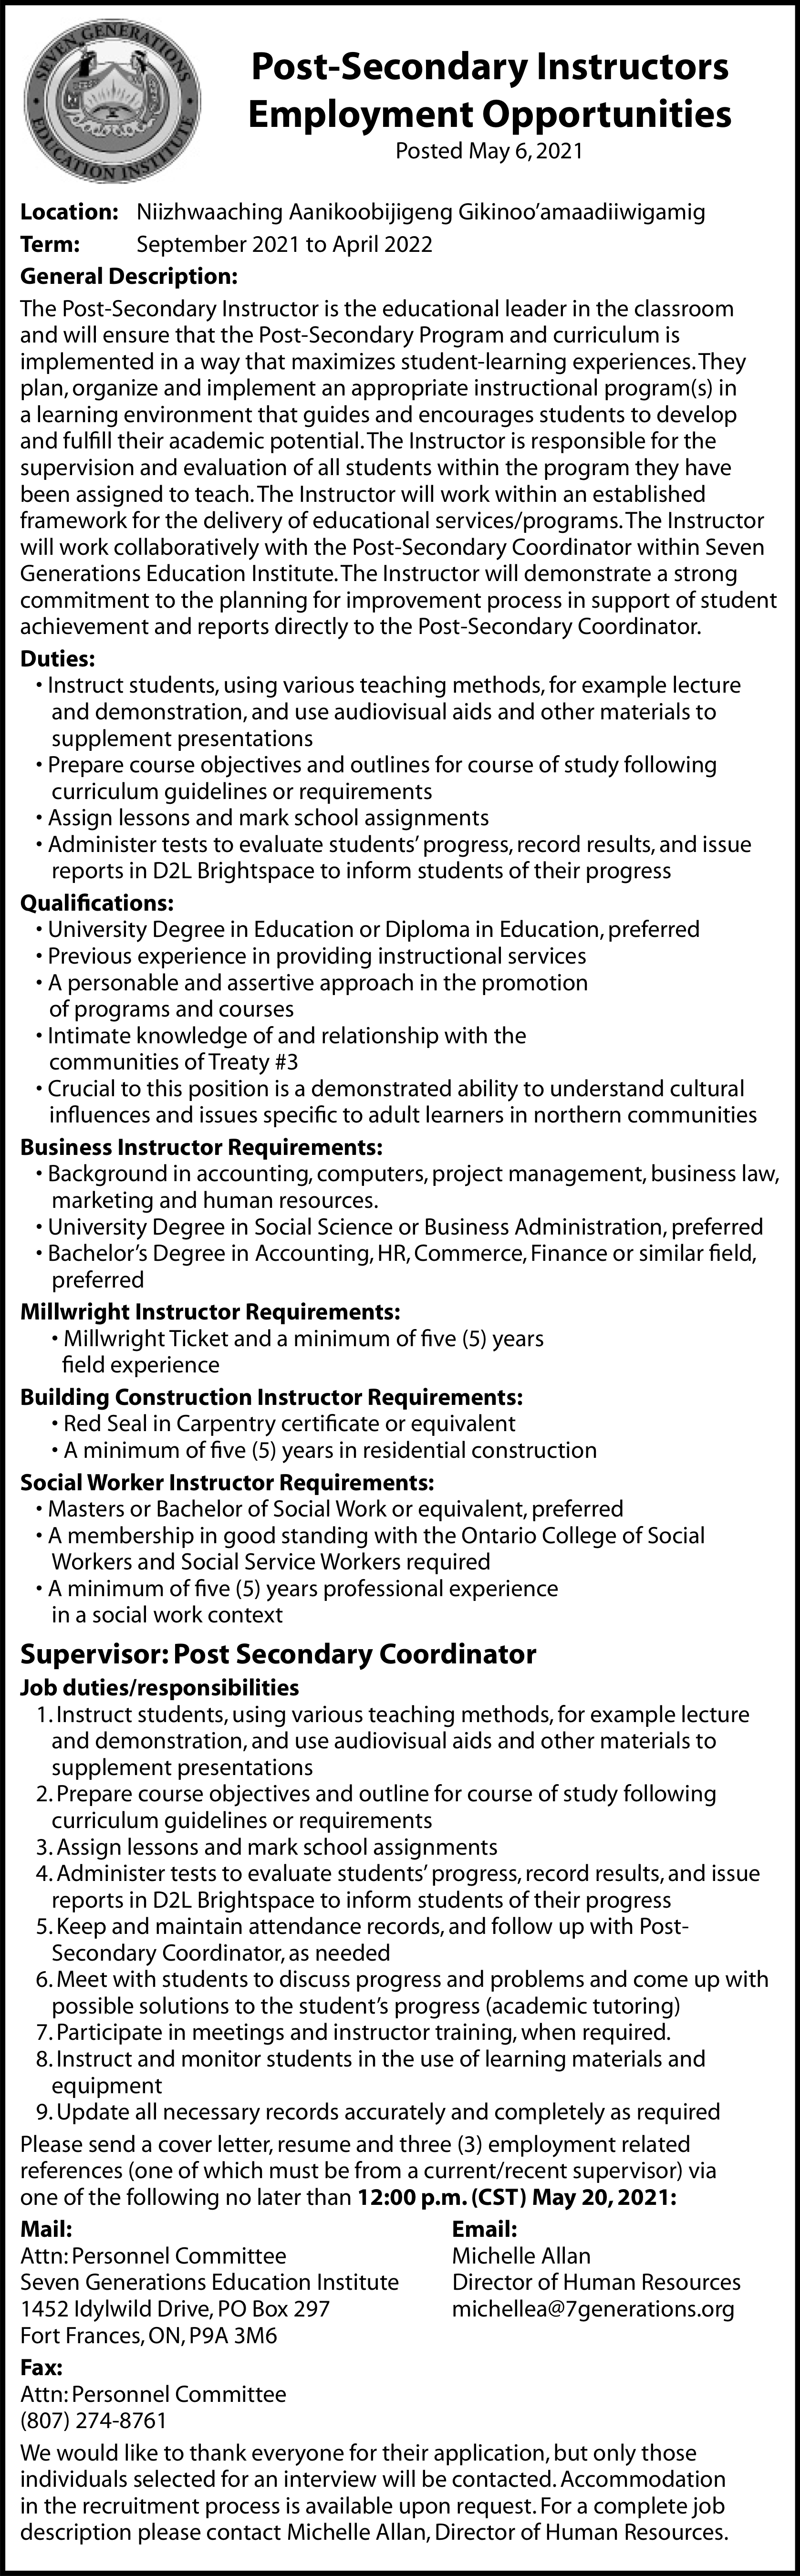 Post-Secondary Instructors Employment Opportunities